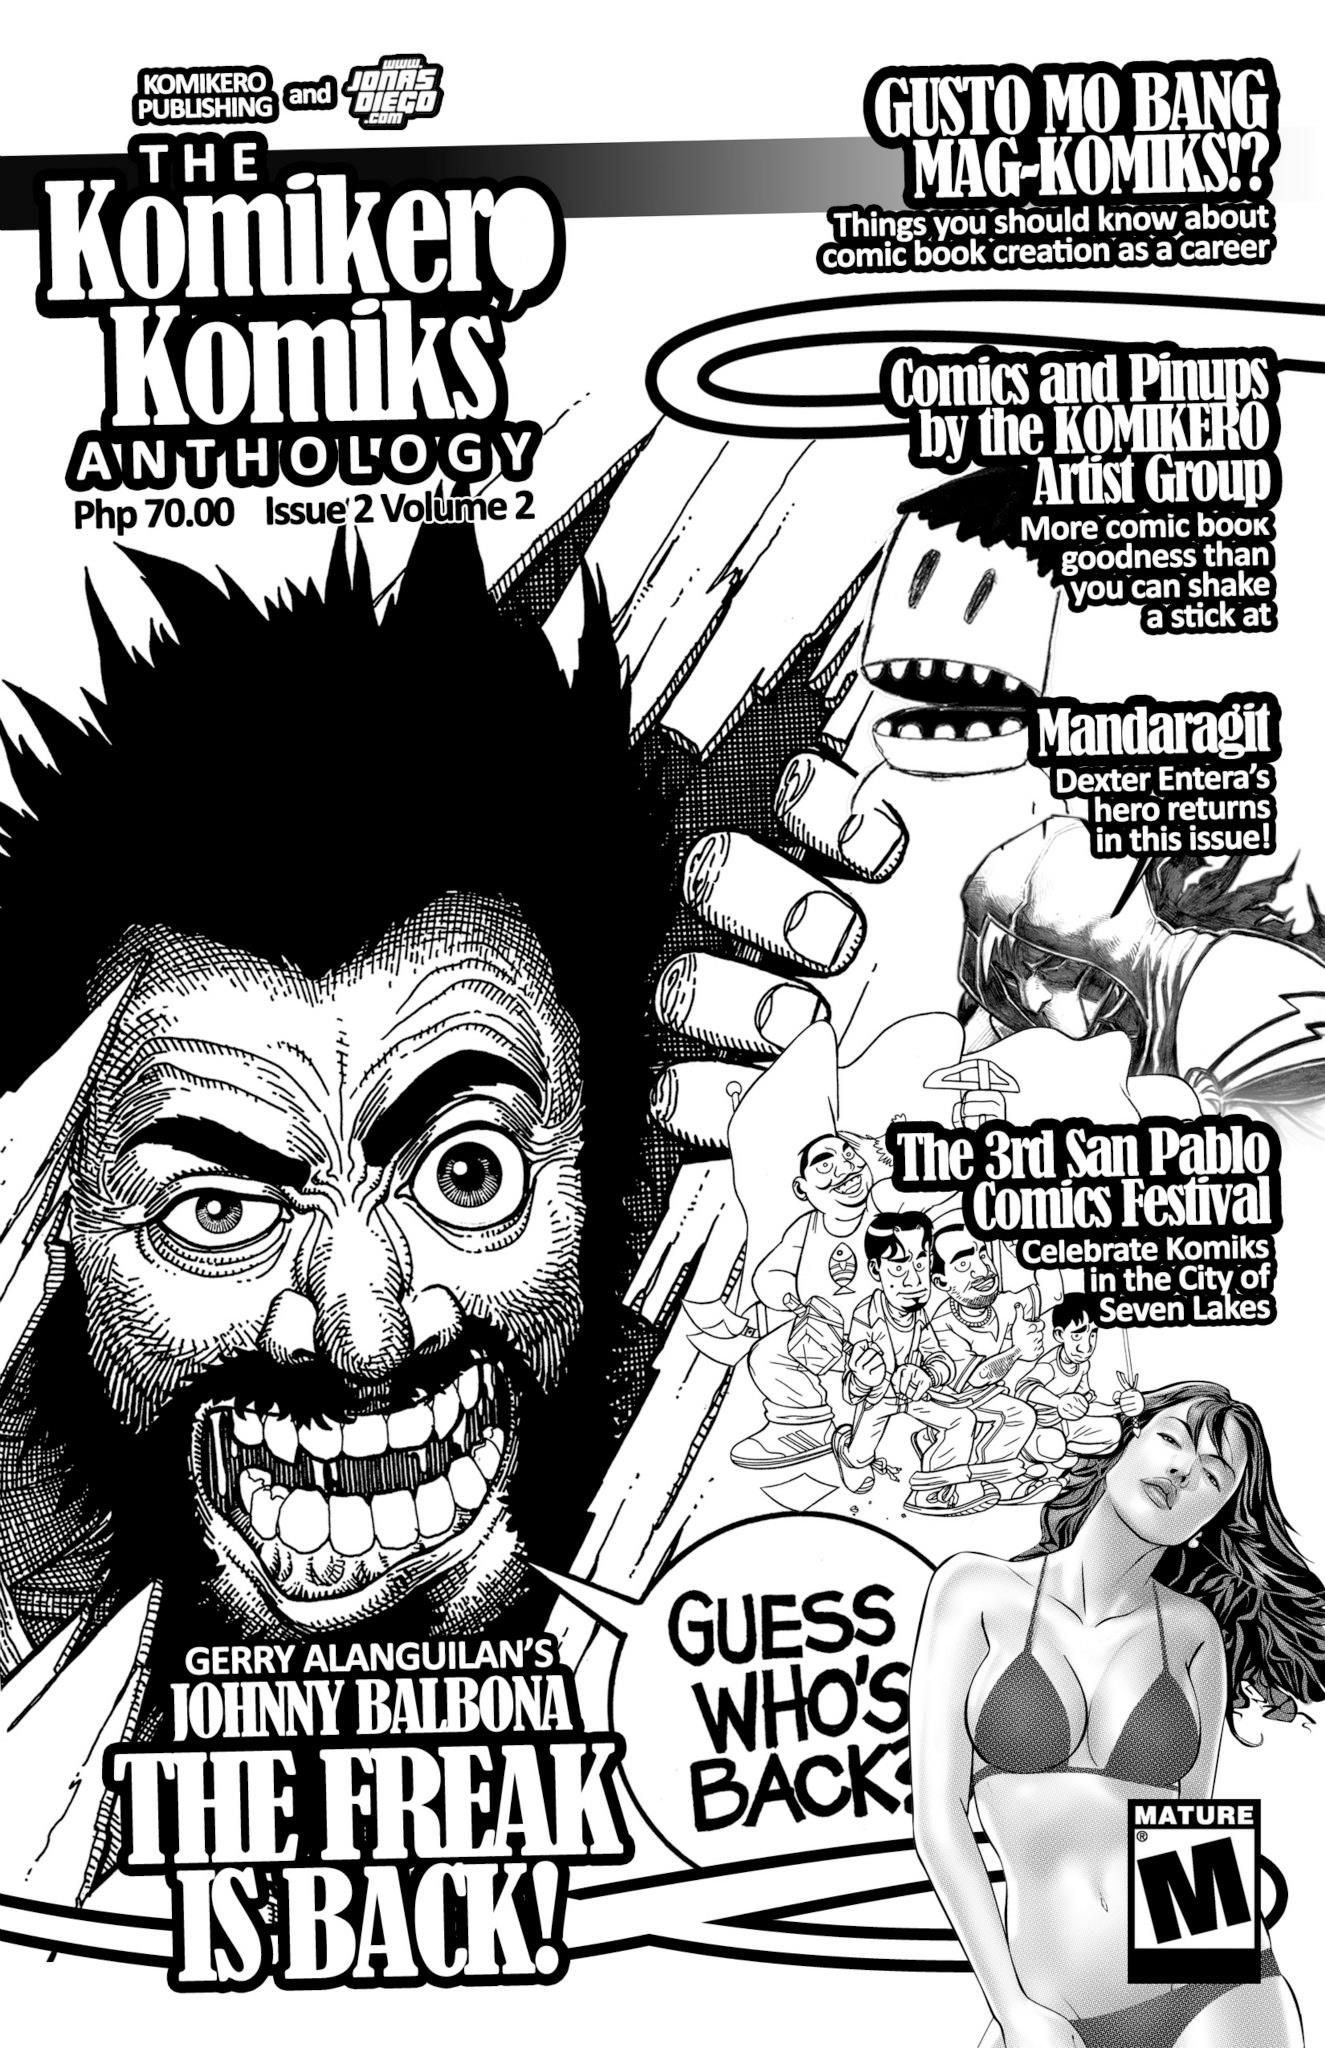 Komikero Komiks Issue 2 Volume Linework By The Artist Group Layout Me And Grayscale Neil Amiel Cervantes